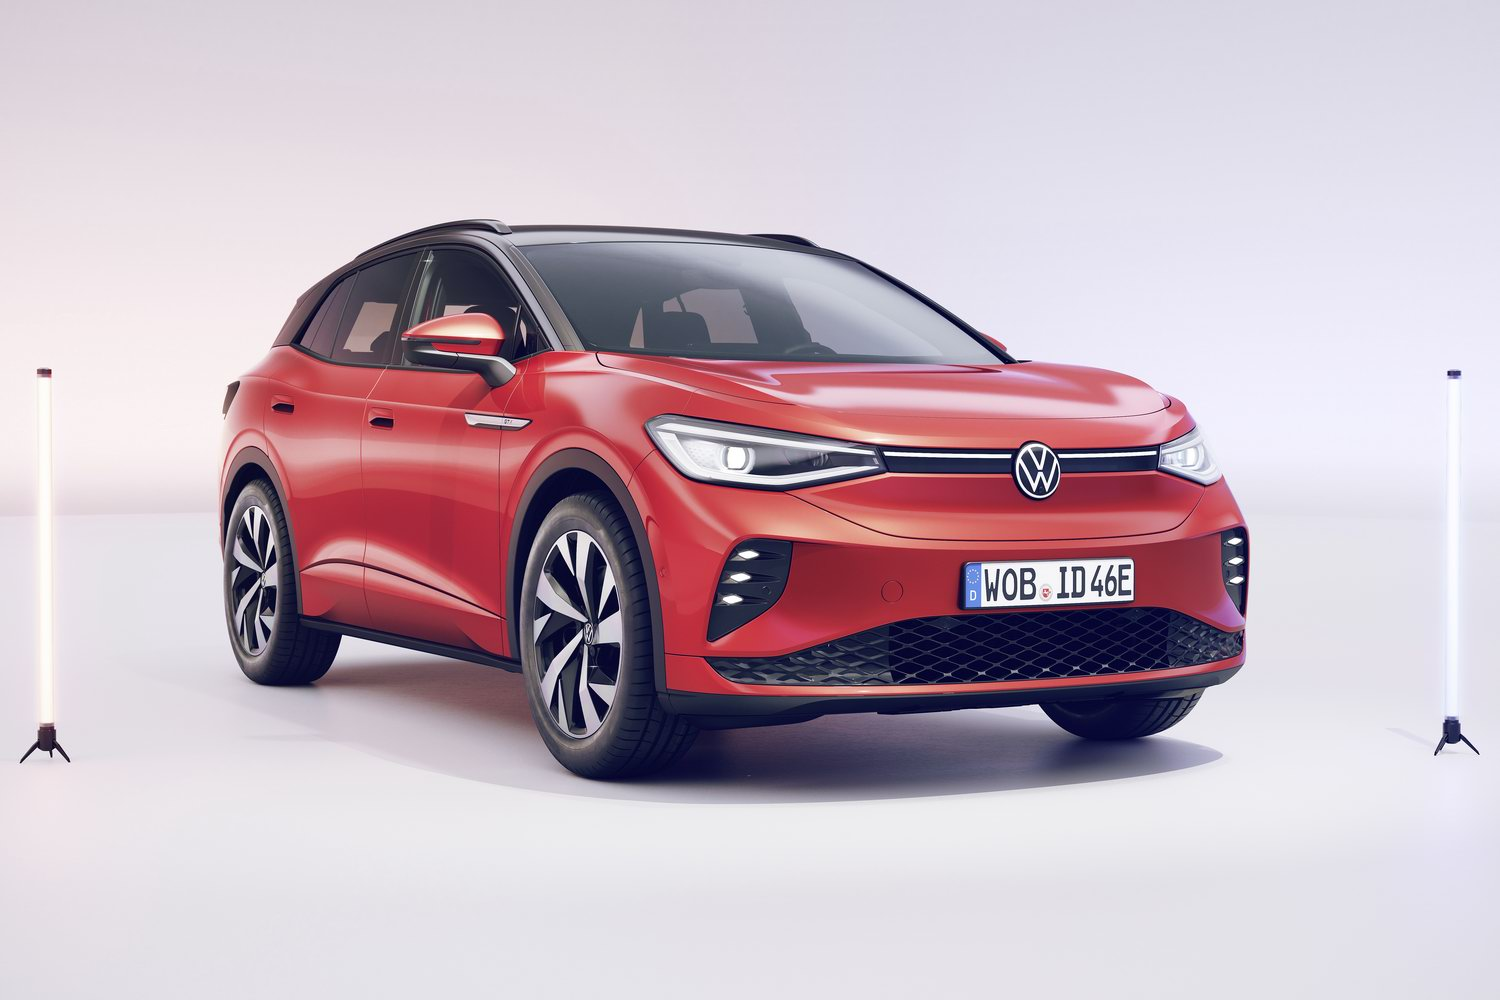 Car News | VW ID.4 GTX gets 299hp and AWD | CompleteCar.ie